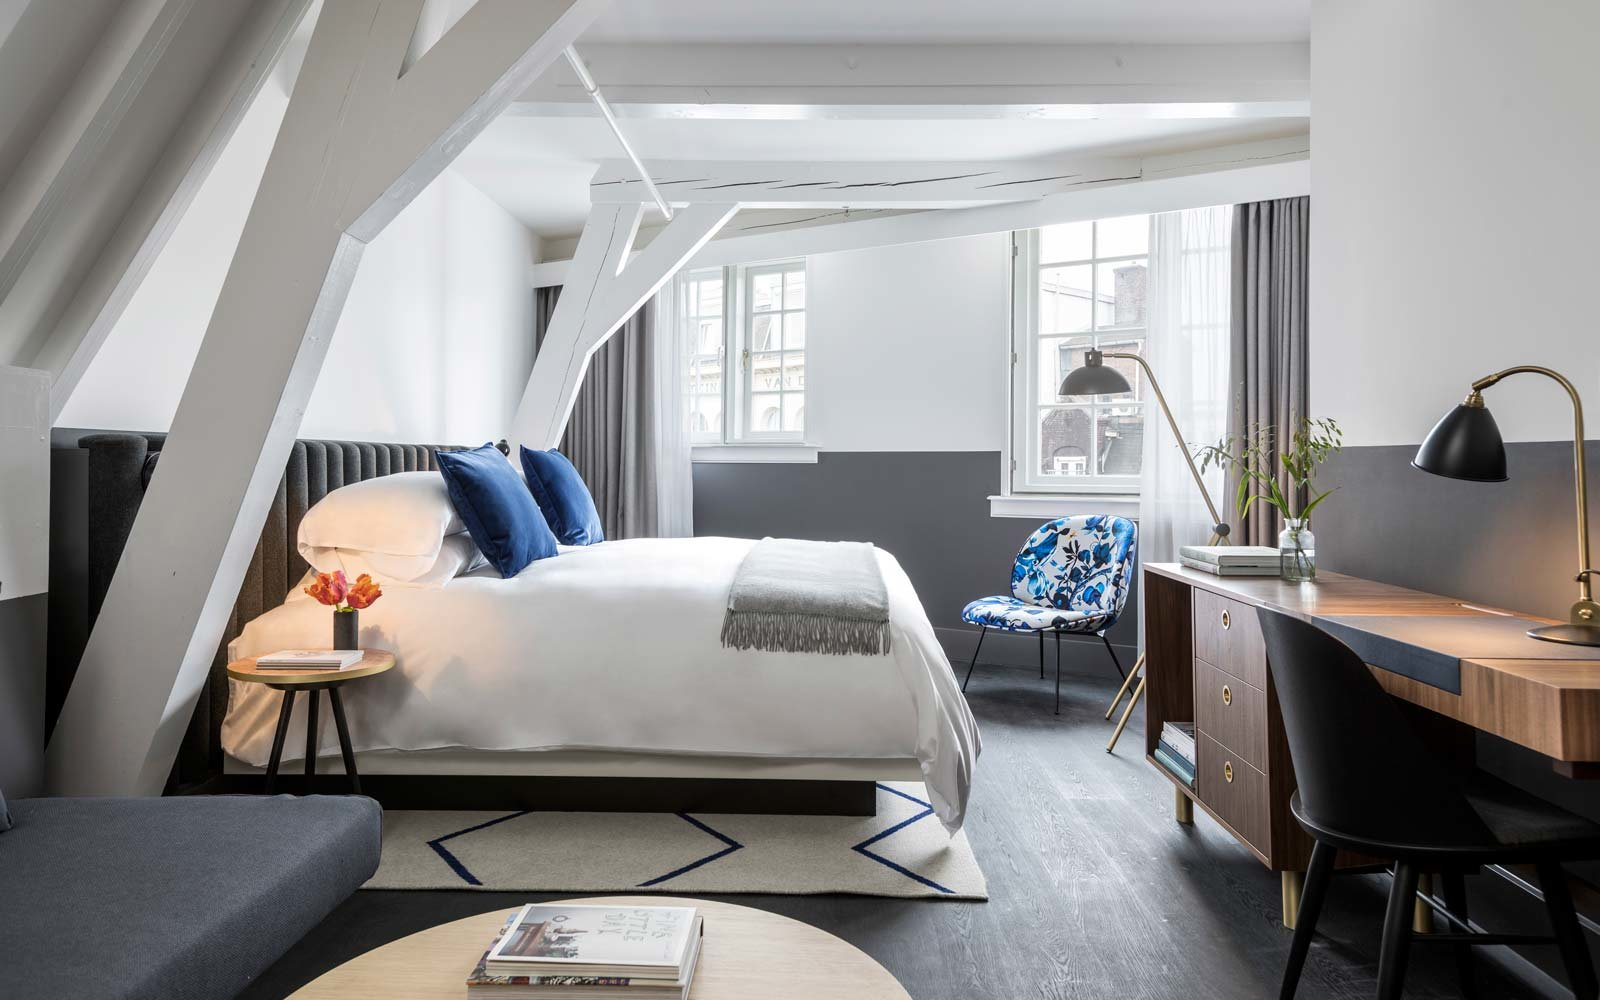 An inside look at the new Kimpton De Witt Hotel in Amsterdam ...